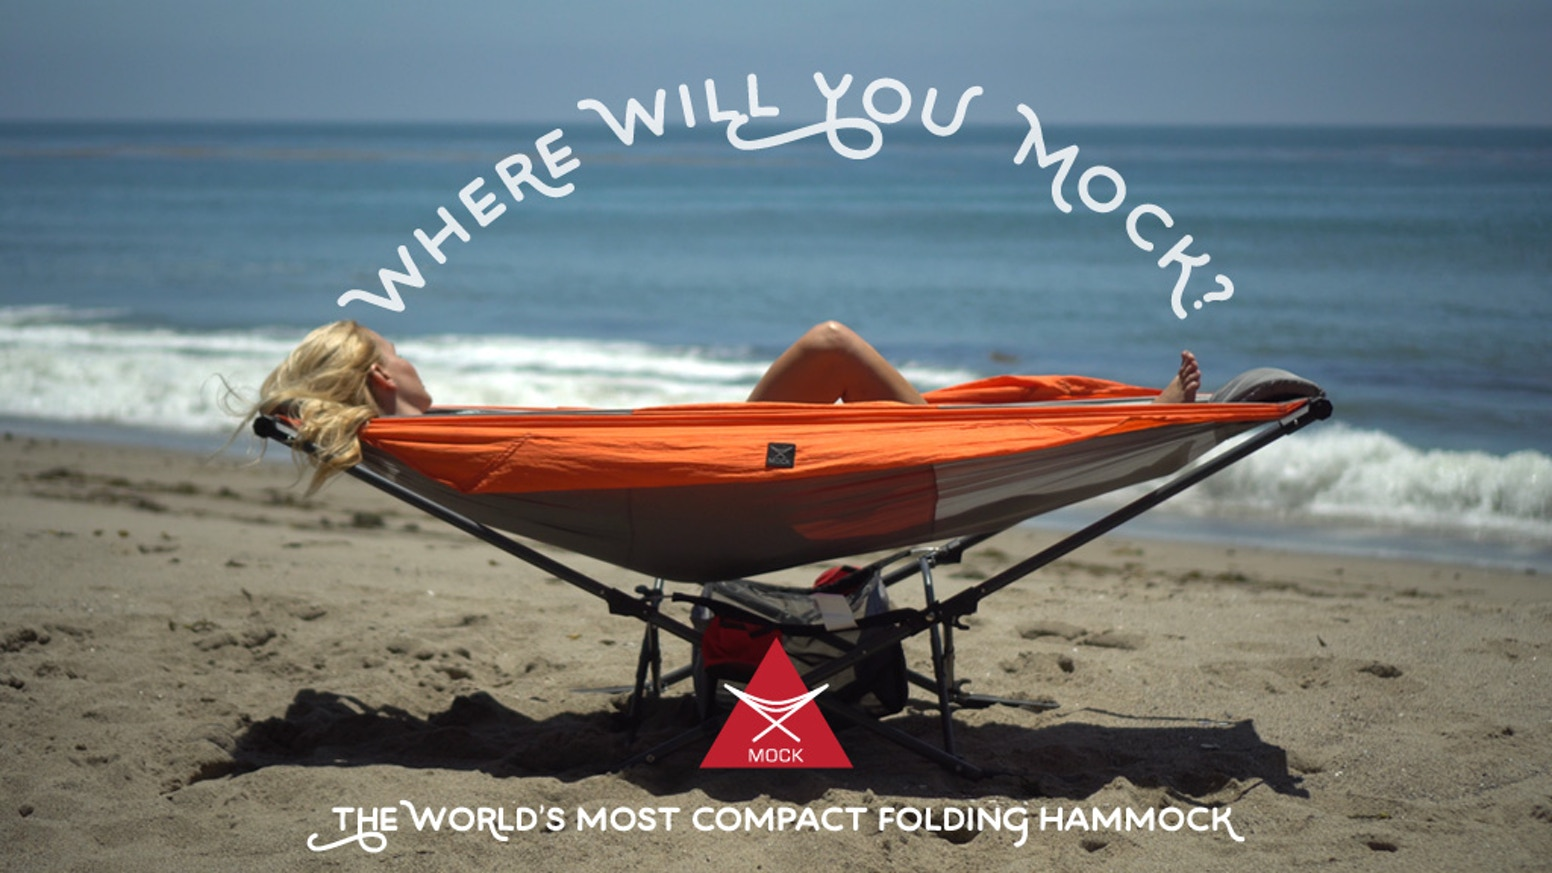 We've changed the hammock as we know it with the introduction of Mock ONE, the world's only compact folding hammock.